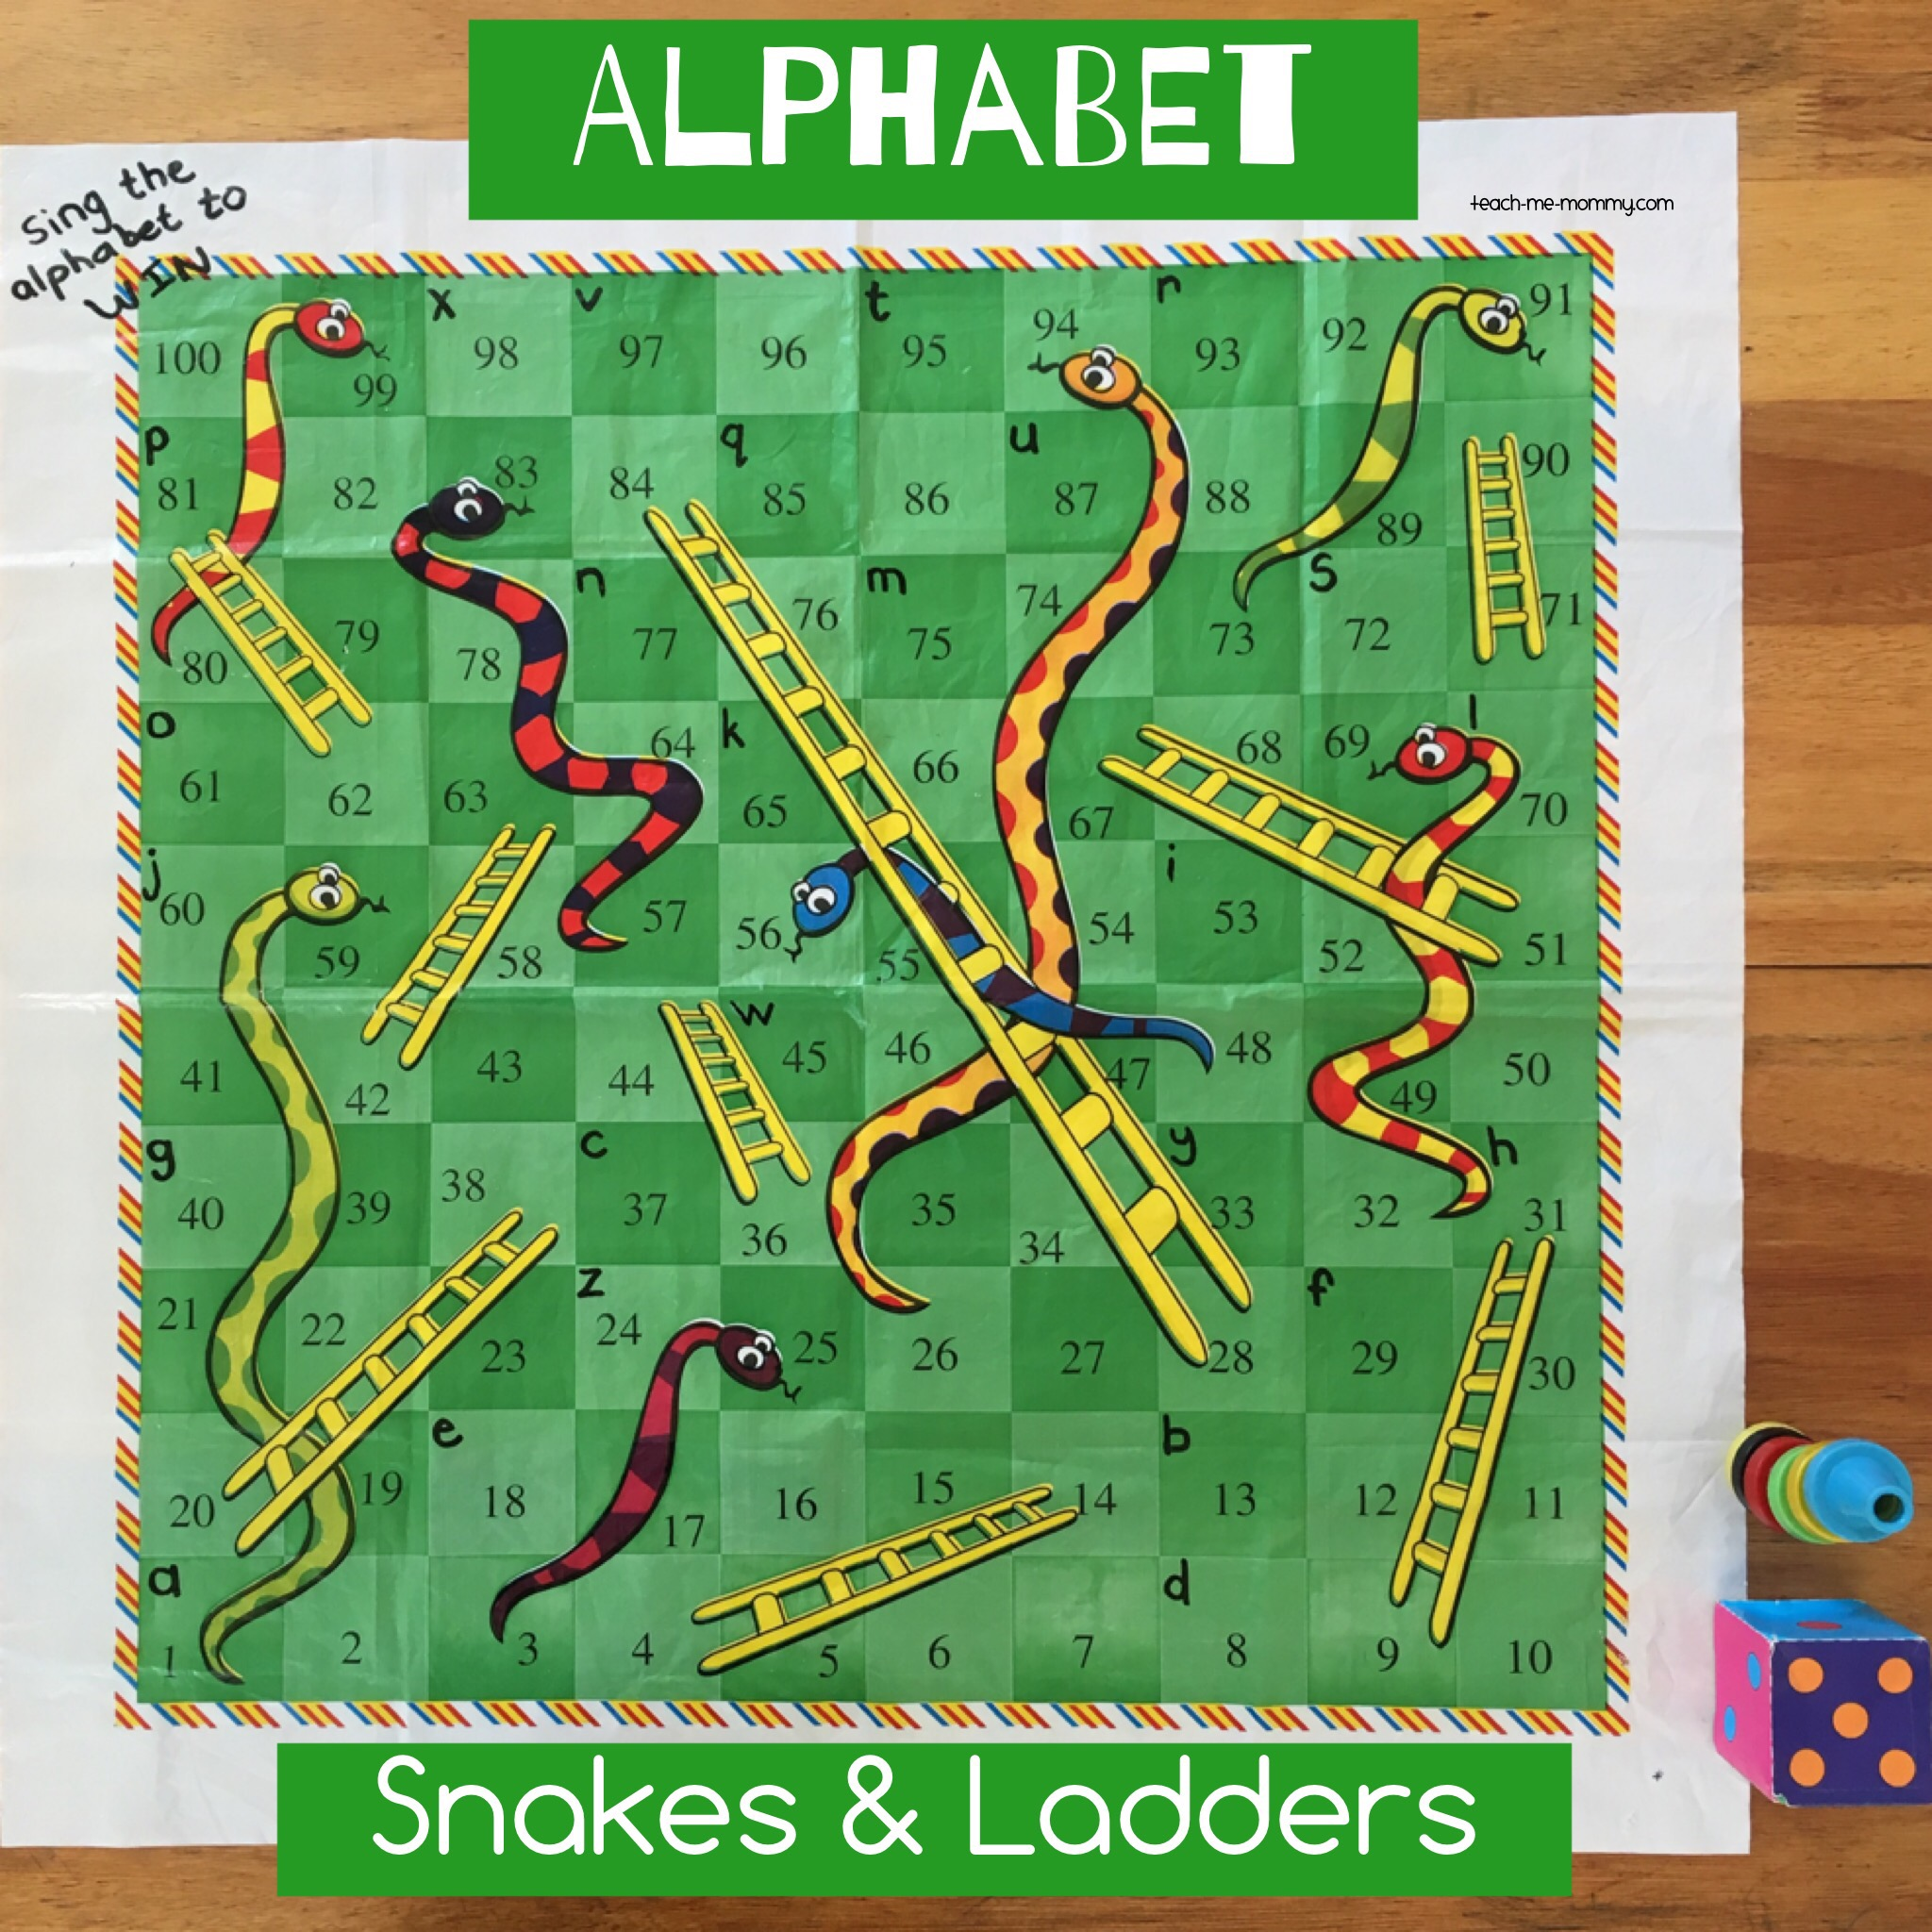 Alphabet Snakes and Ladders game